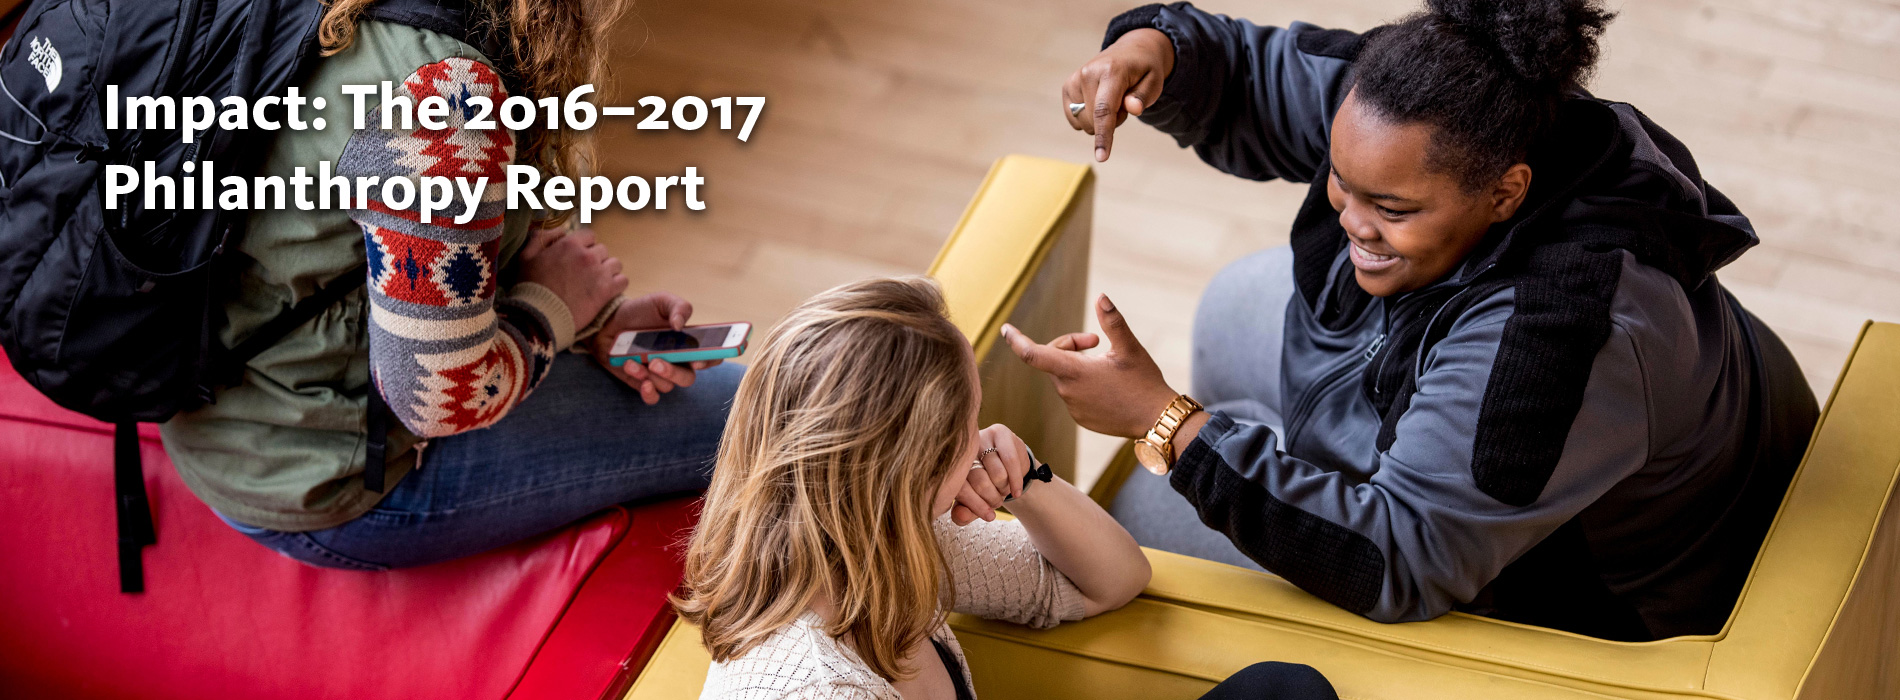 Infographic: Impact - The 2016-2017 Philanthropy Report. Image: Students chatting while sitting in colorful armchairs.